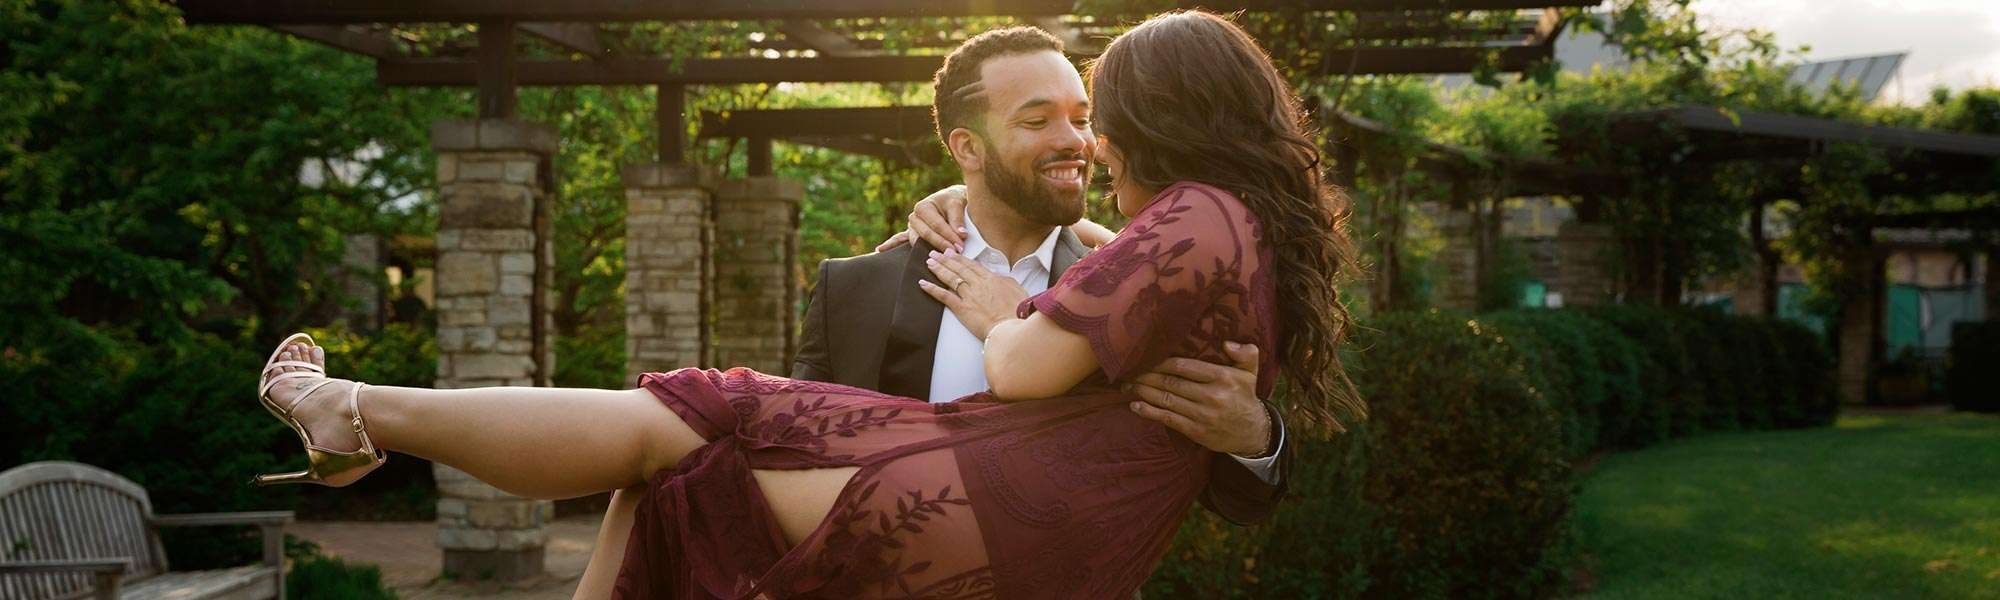 Engagement photos, beautiful attire, outdoors